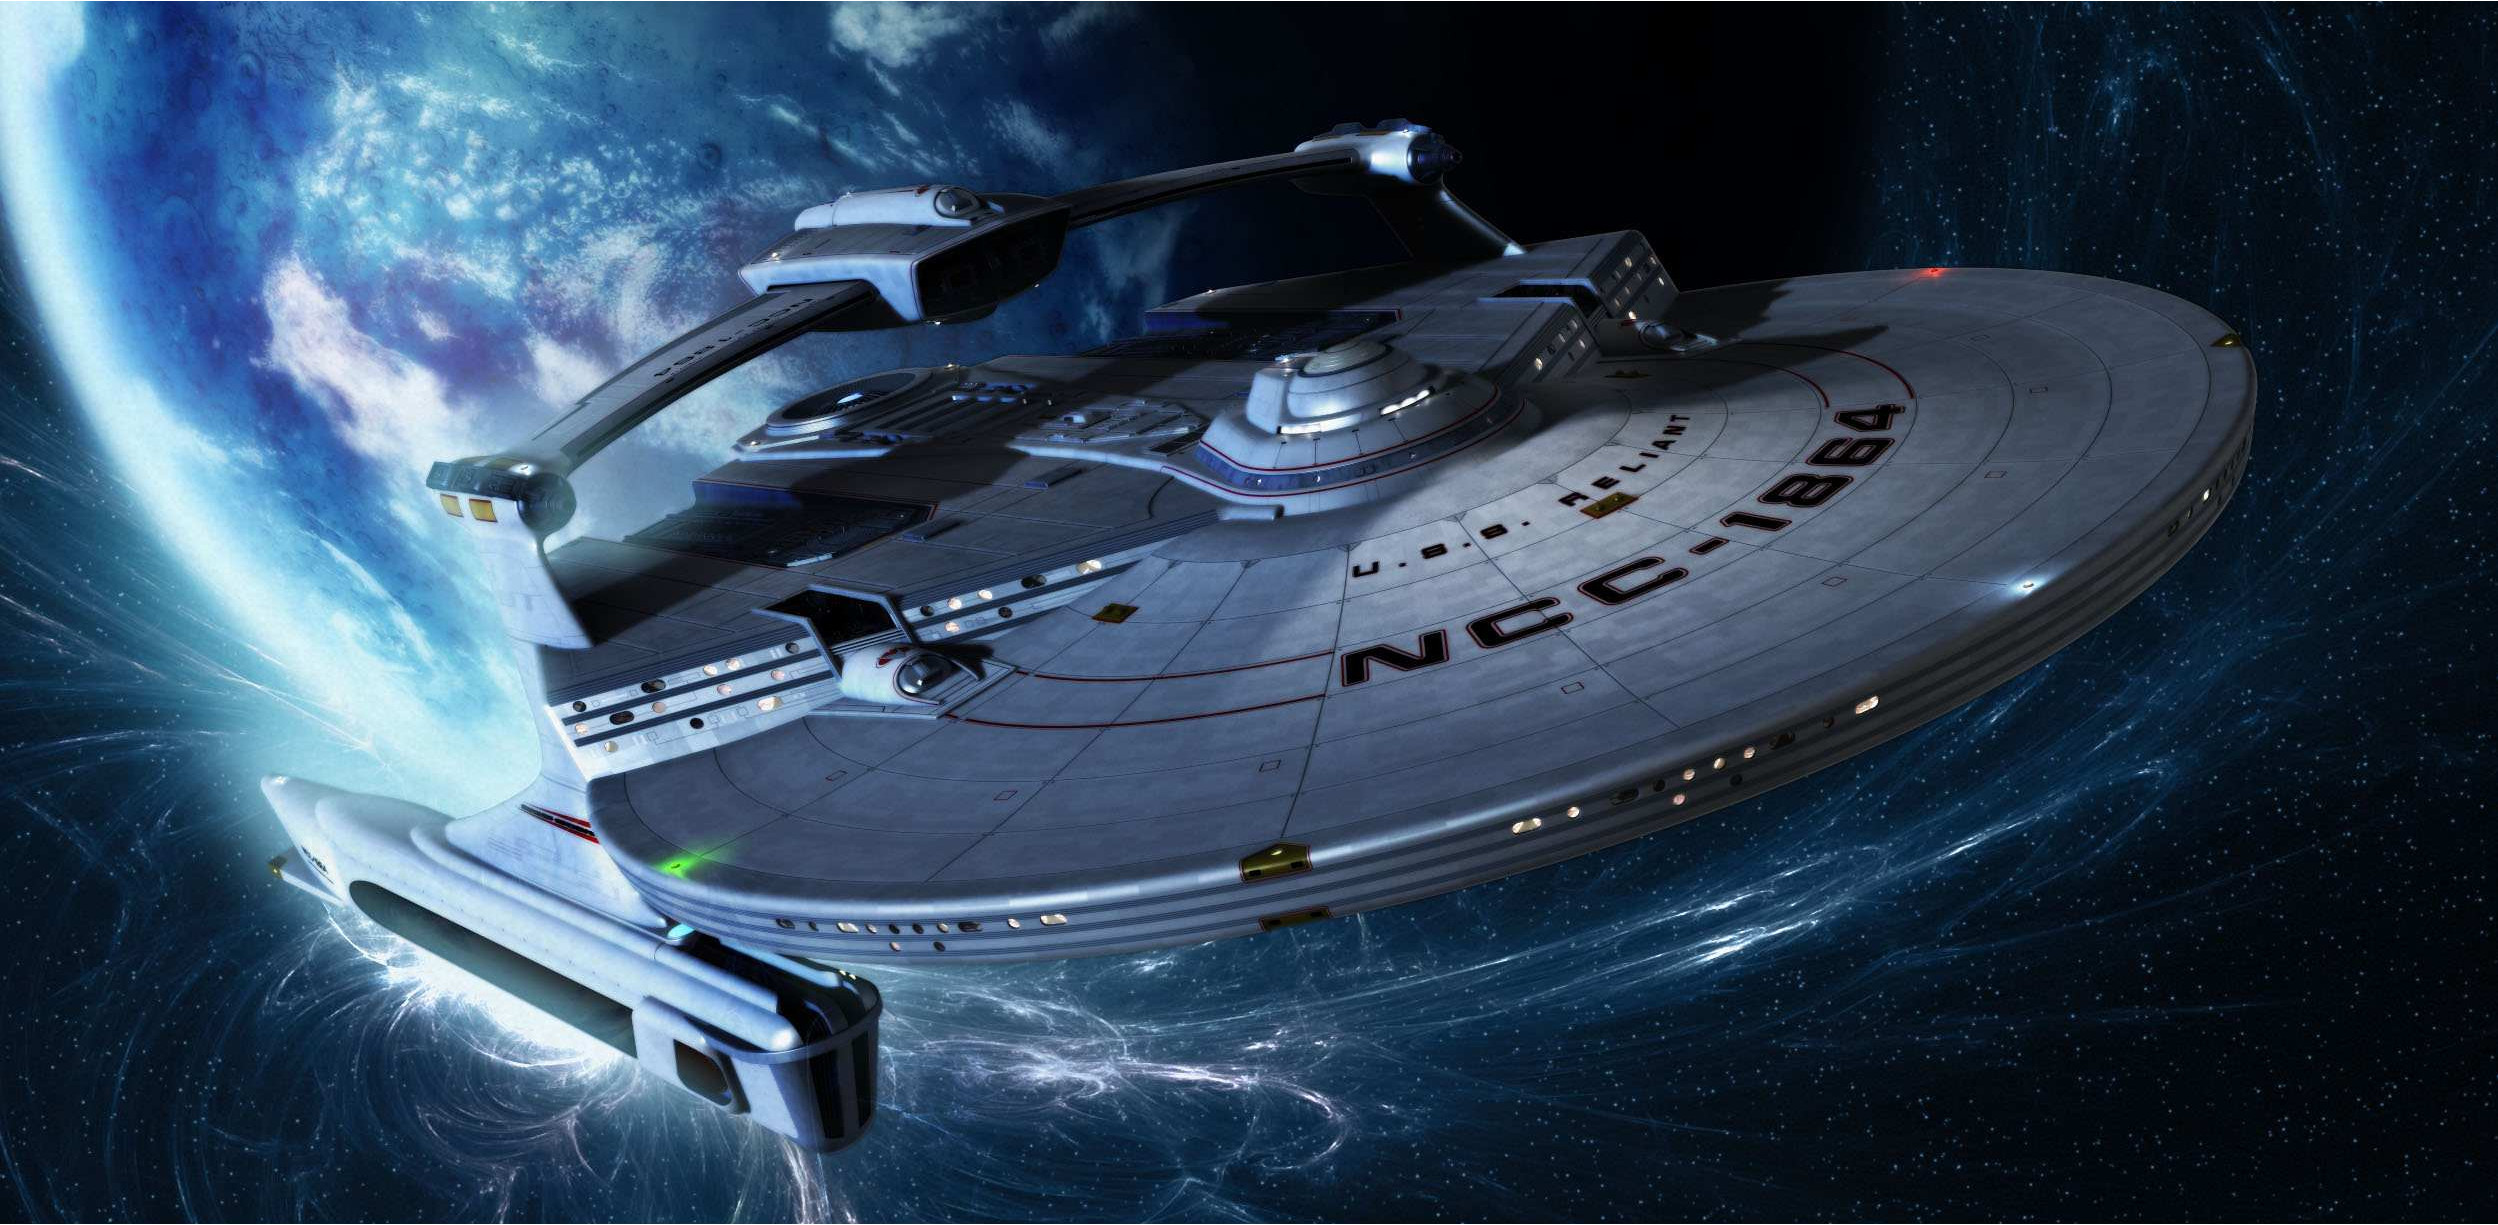 2498x1225 HD Wallpaper | Background Image ID:350301.  Sci Fi Star Trek